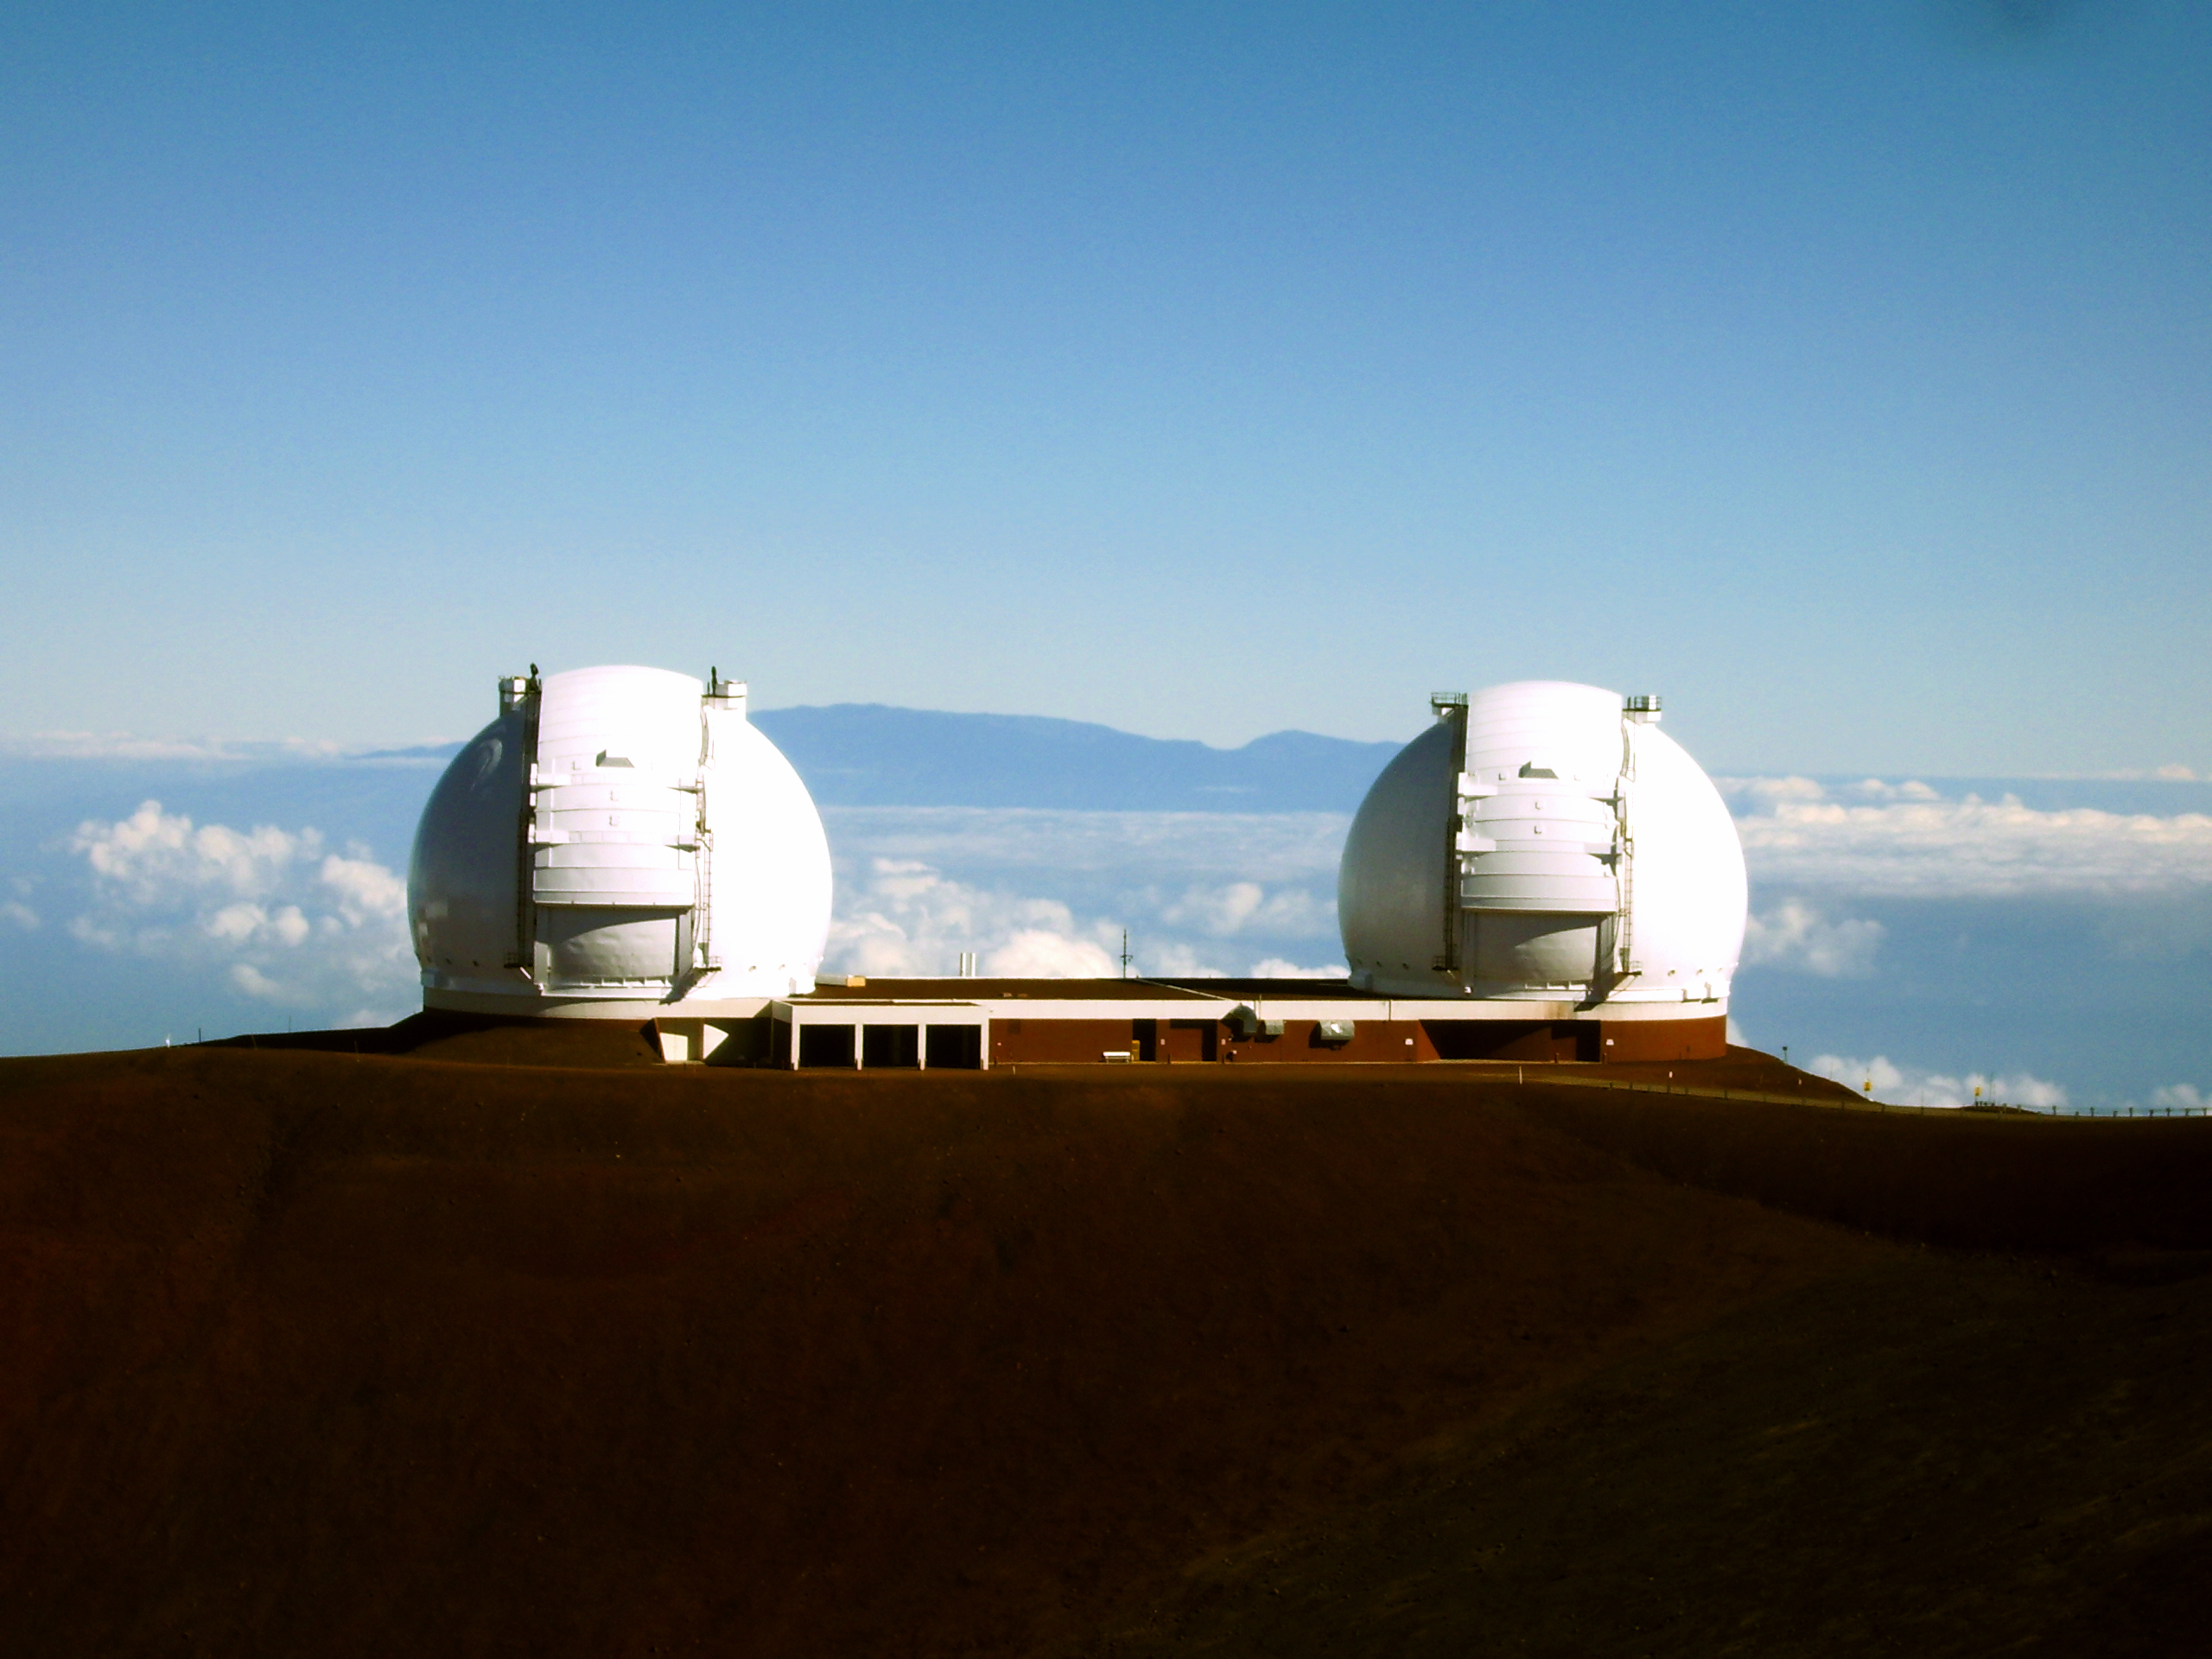 astronomy observatory with telescope - photo #4